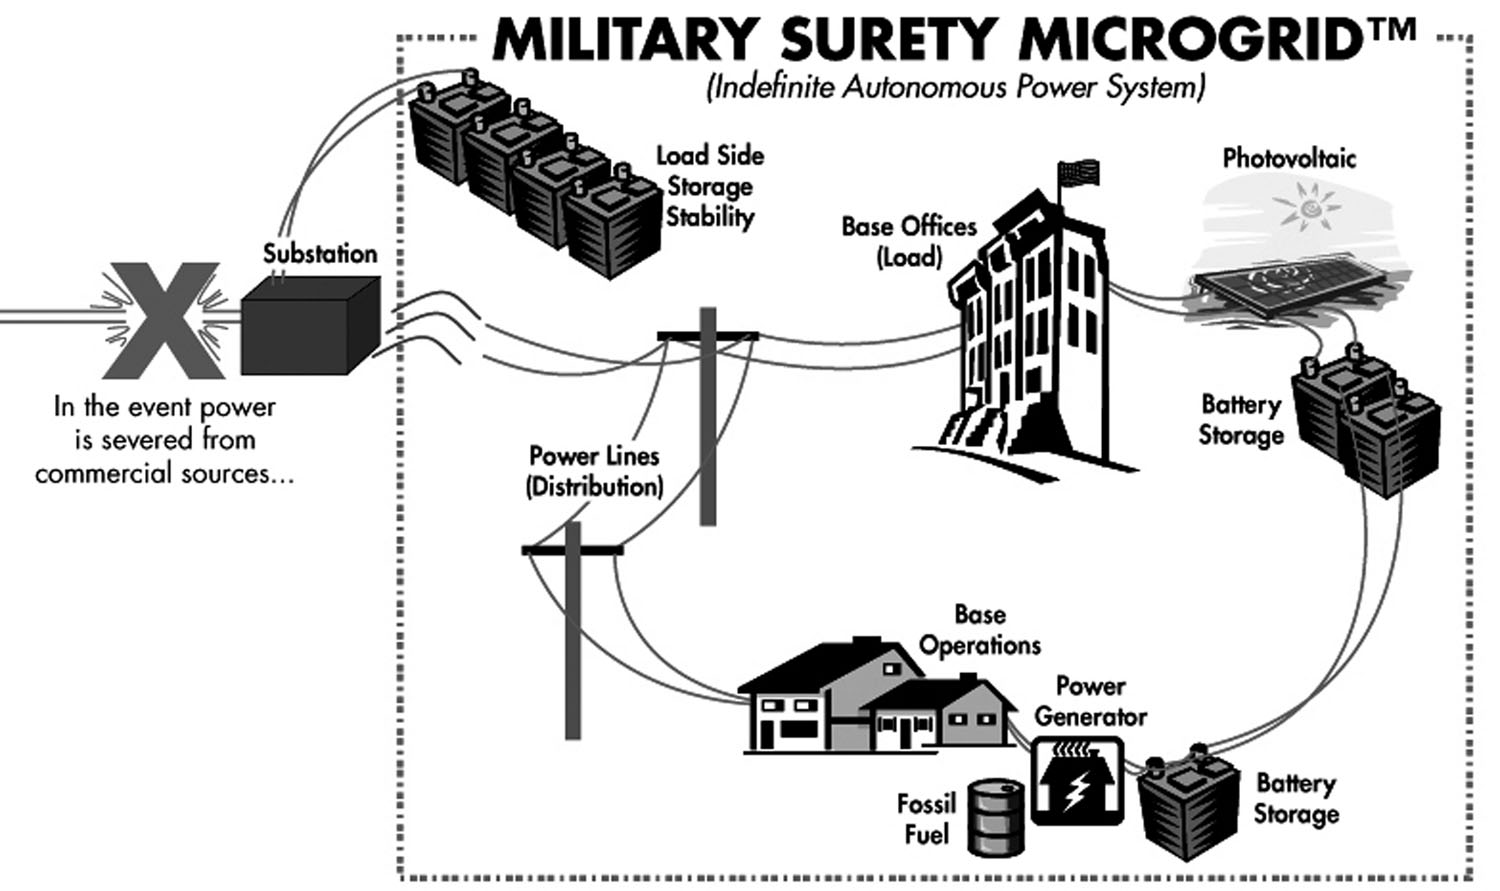 sandia researchers apply energy surety model to military bases